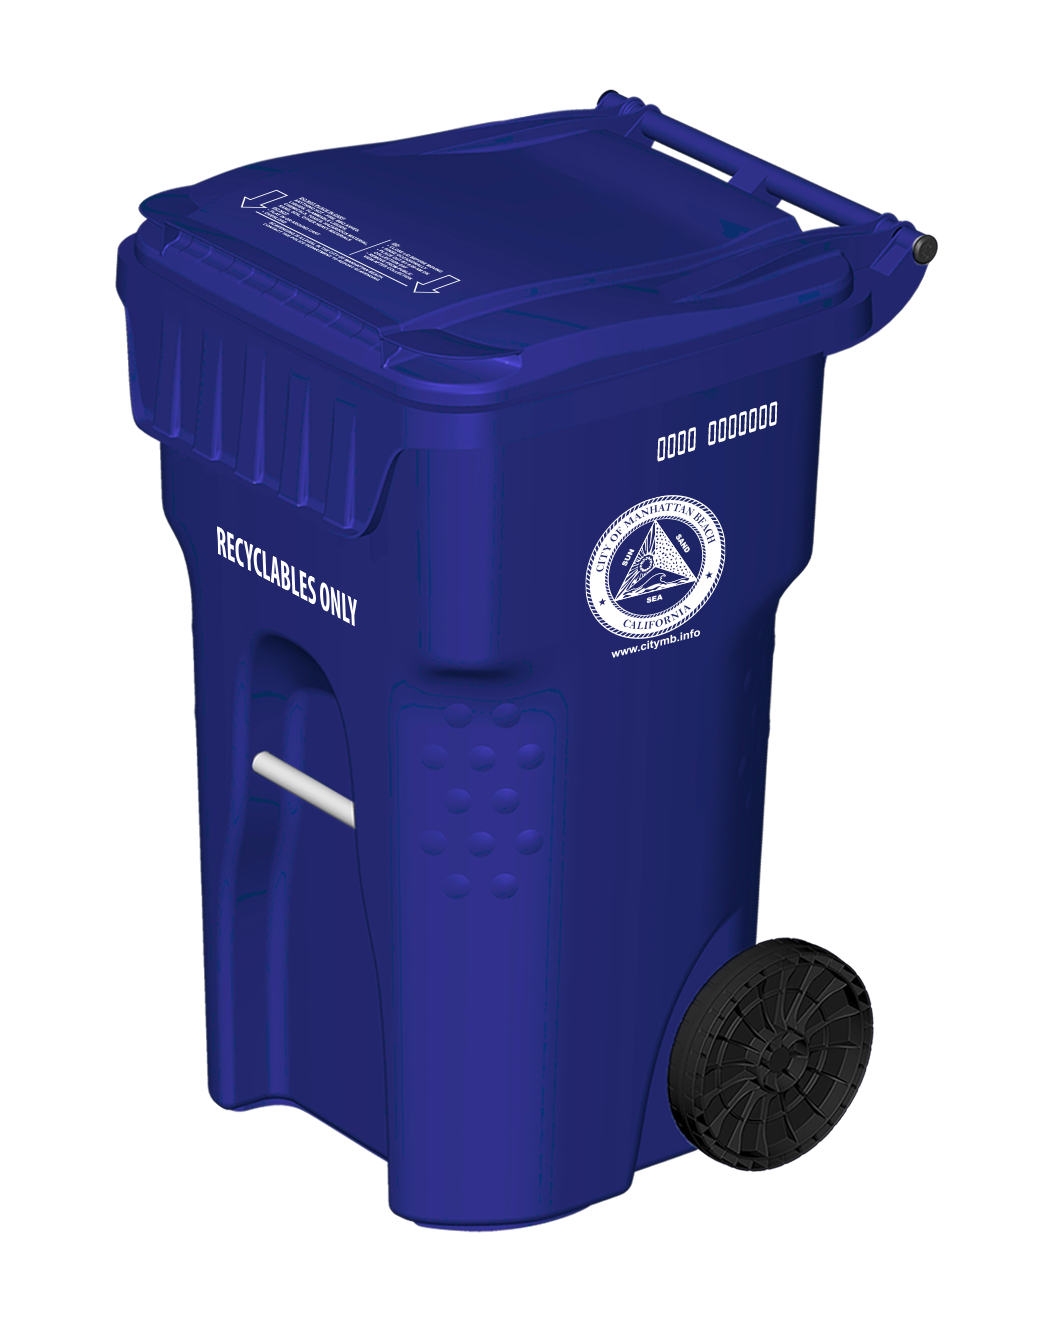 how to order recycling bin from waste management